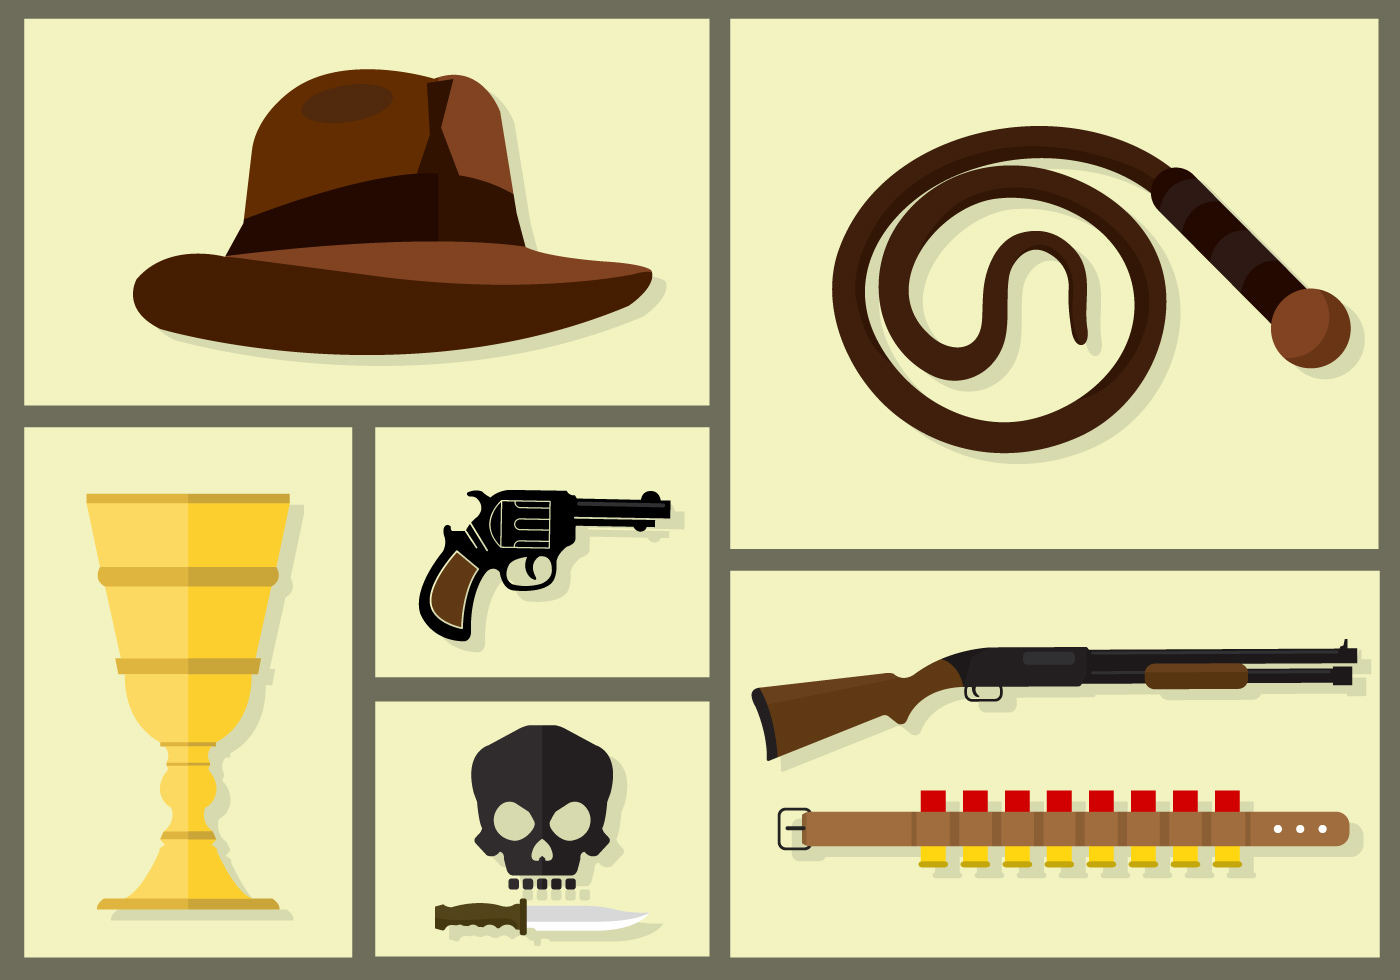 Indiana Jones Vectors - Download Free Vector Art, Stock Graphics & Images